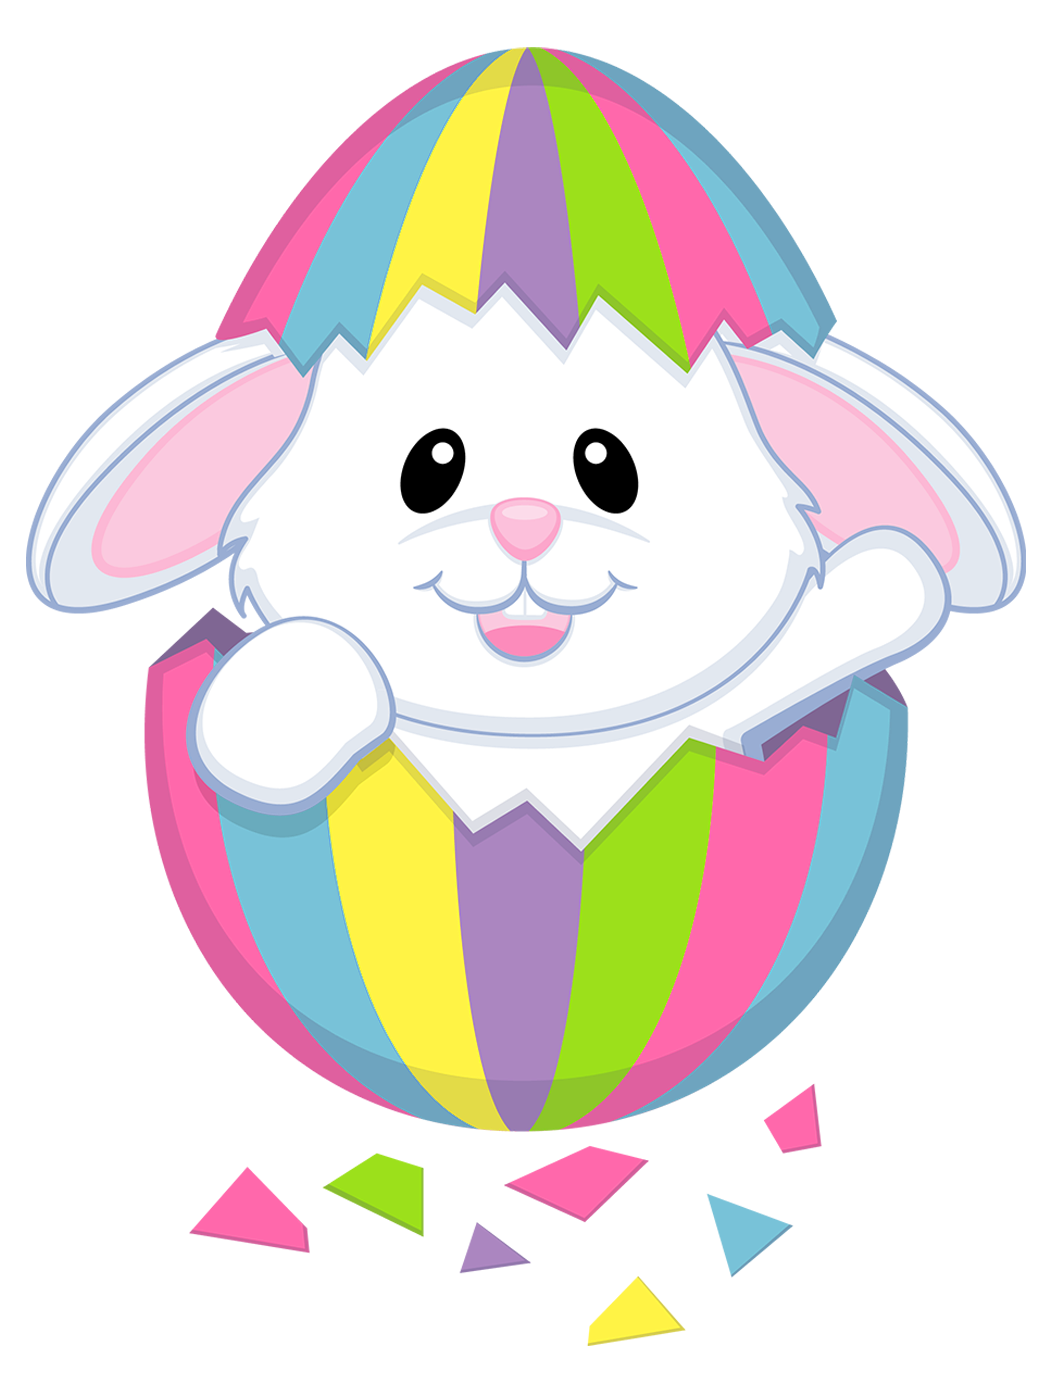 Easter at getdrawings com. Cute clipart transparent